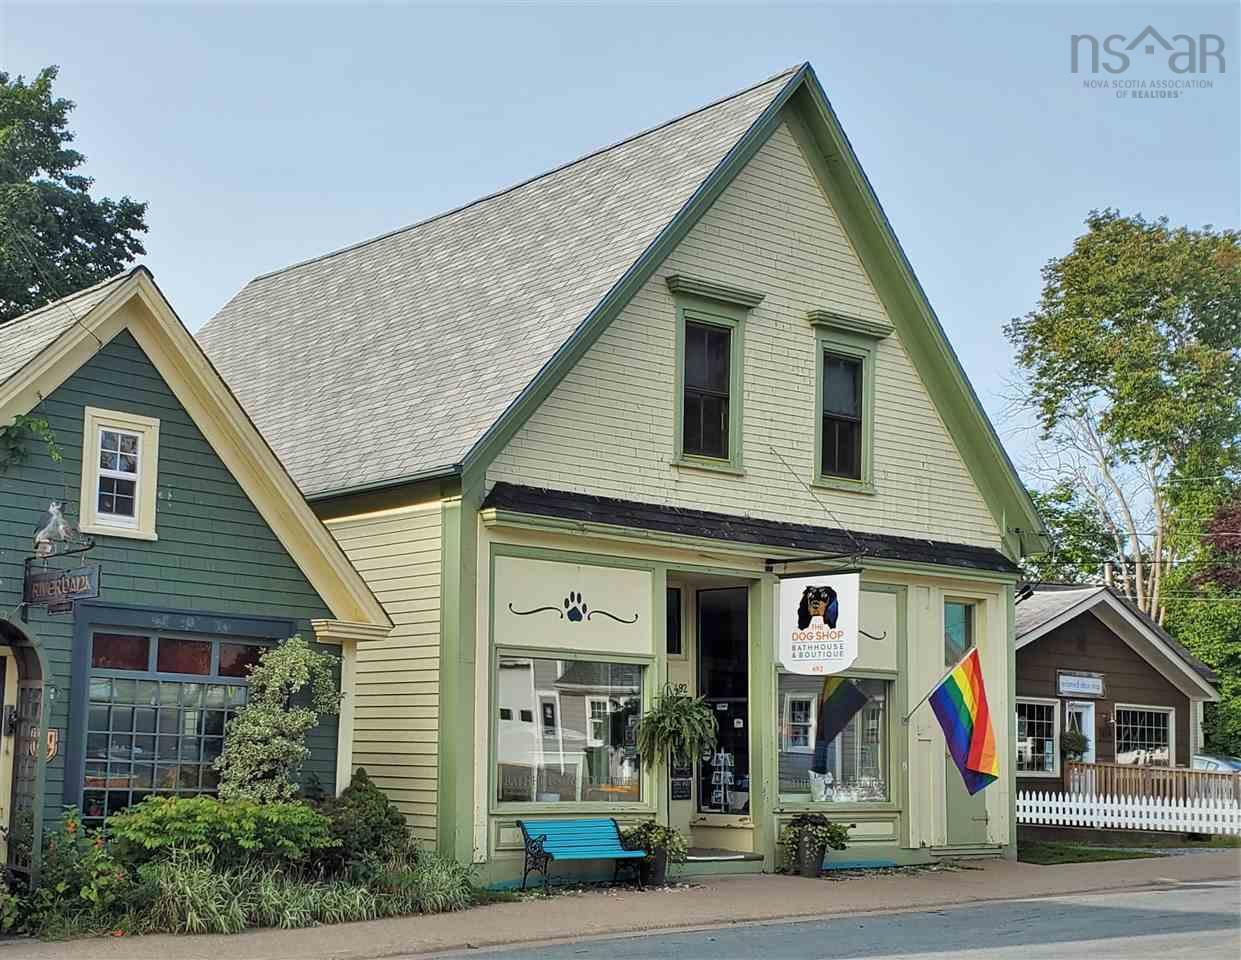 492 Main Street, Mahone Bay, NS B0J 2E0, 2 Bedrooms Bedrooms, ,2 BathroomsBathrooms,Residential,For Sale,492 Main Street,202018696